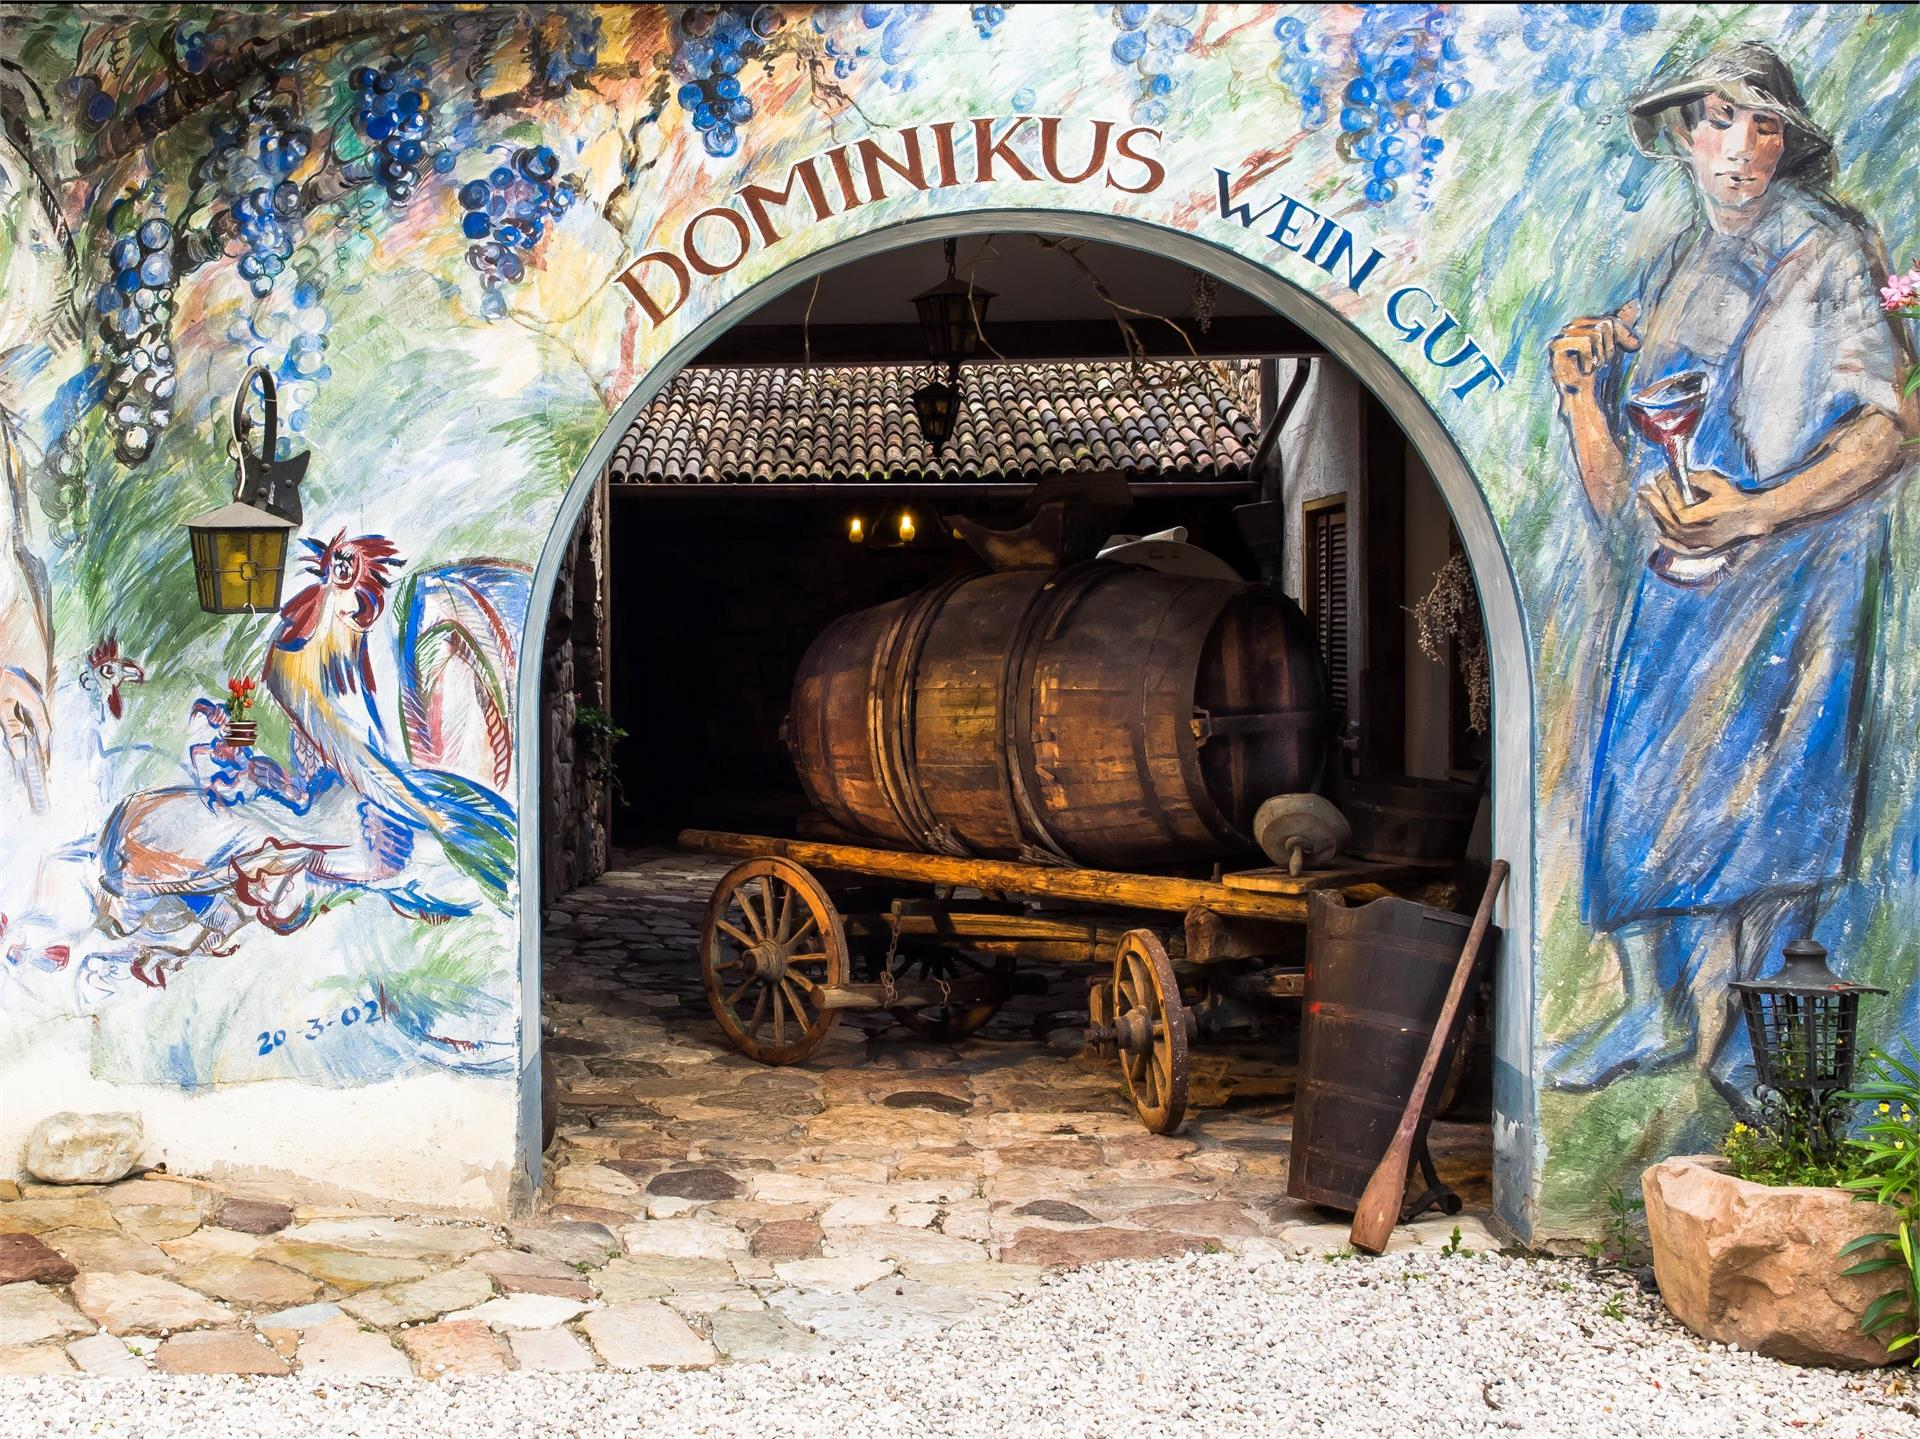 Winery Dominikus